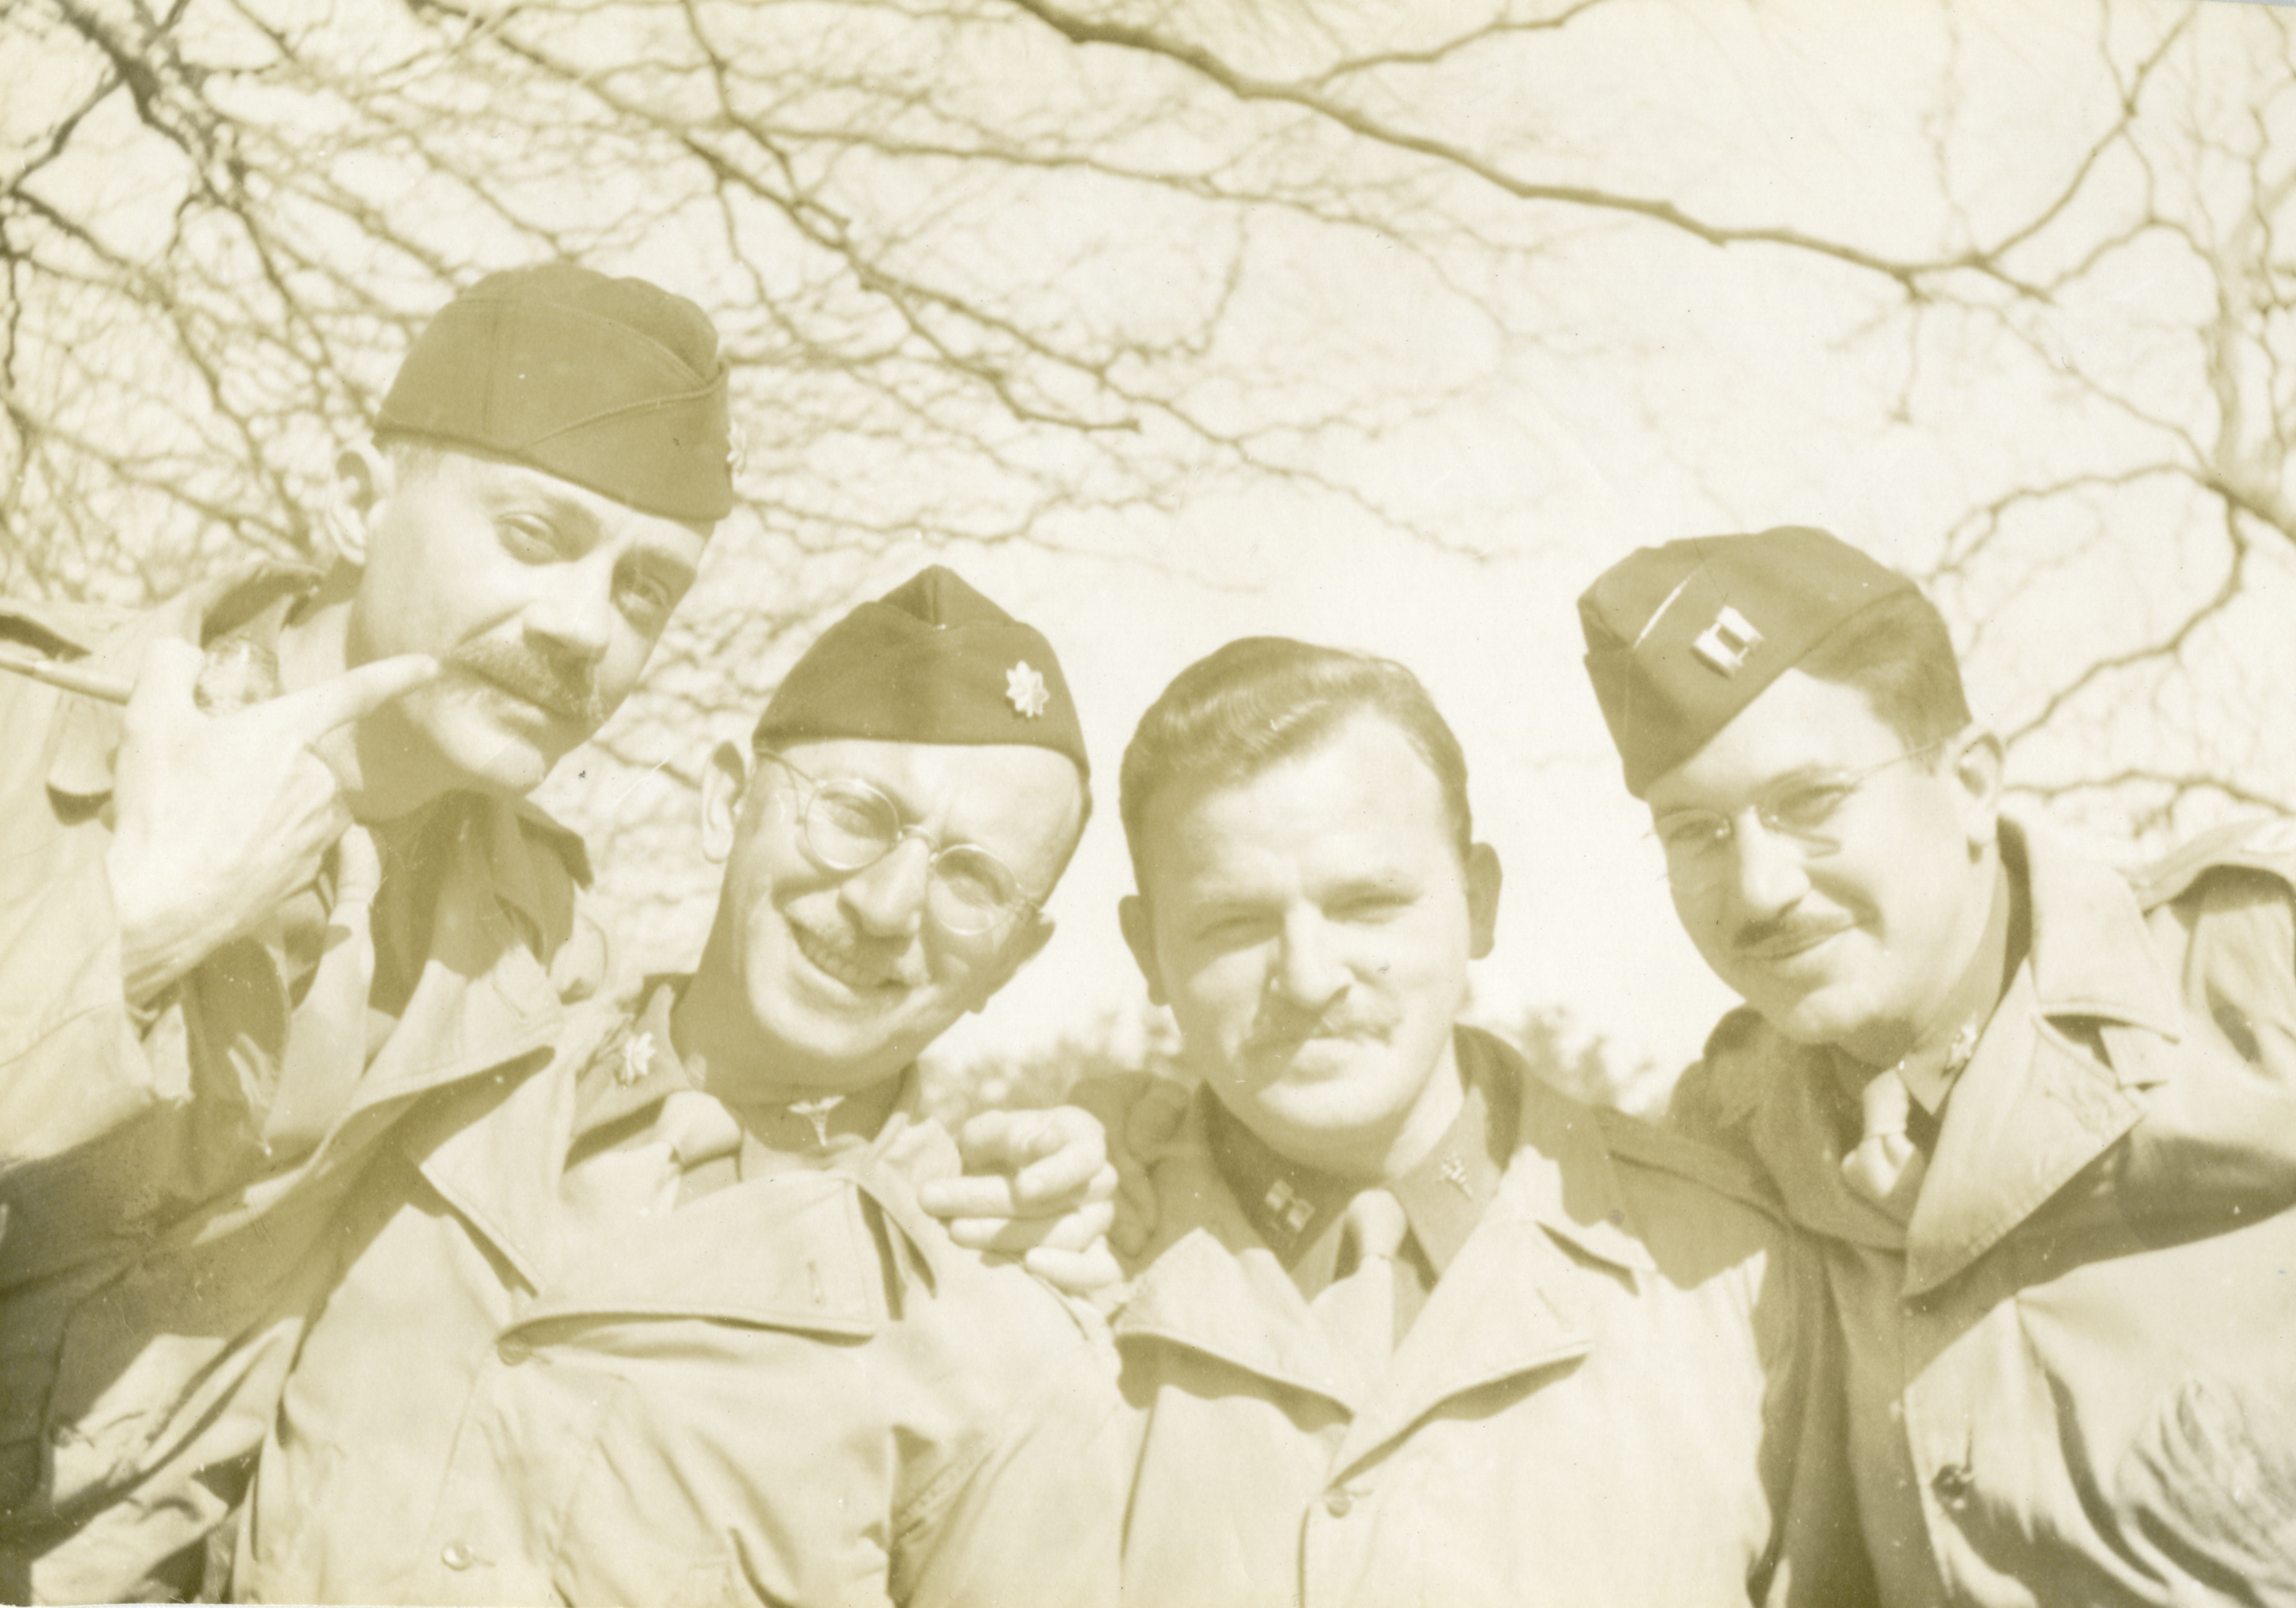 WWII soldiers showing off their mustaches